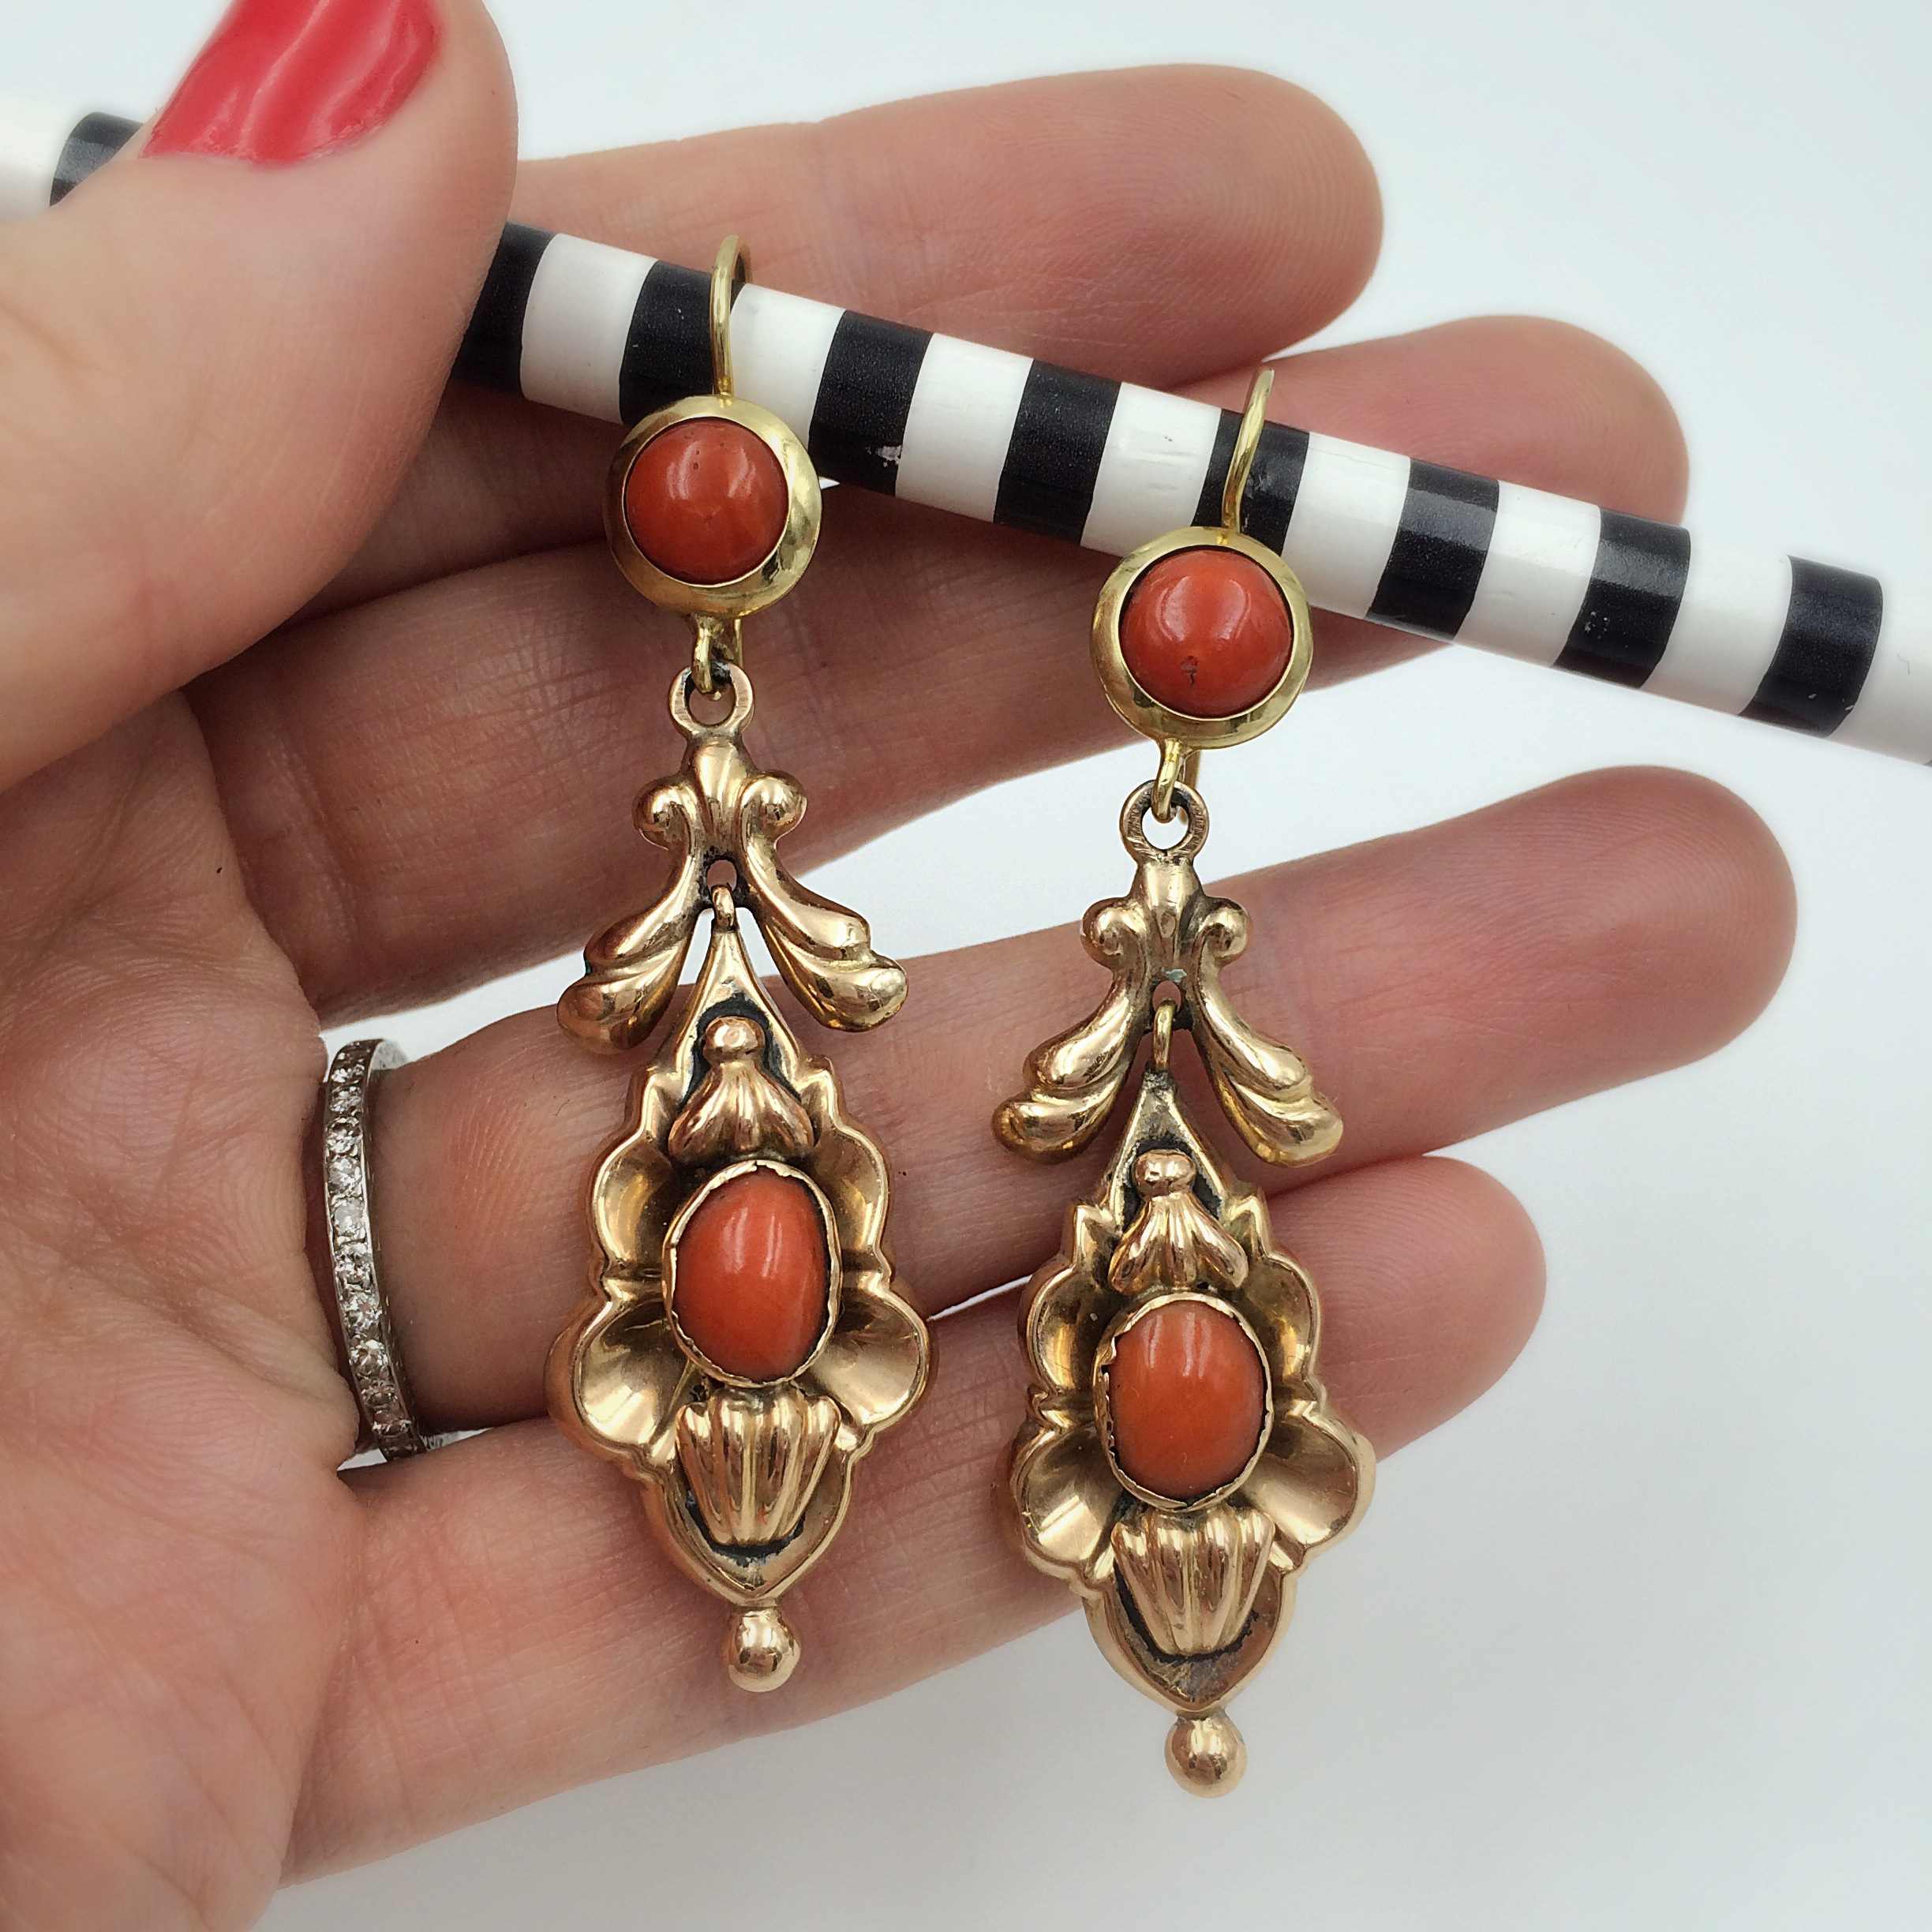 antique coral earrings at Reverie vintage NYC